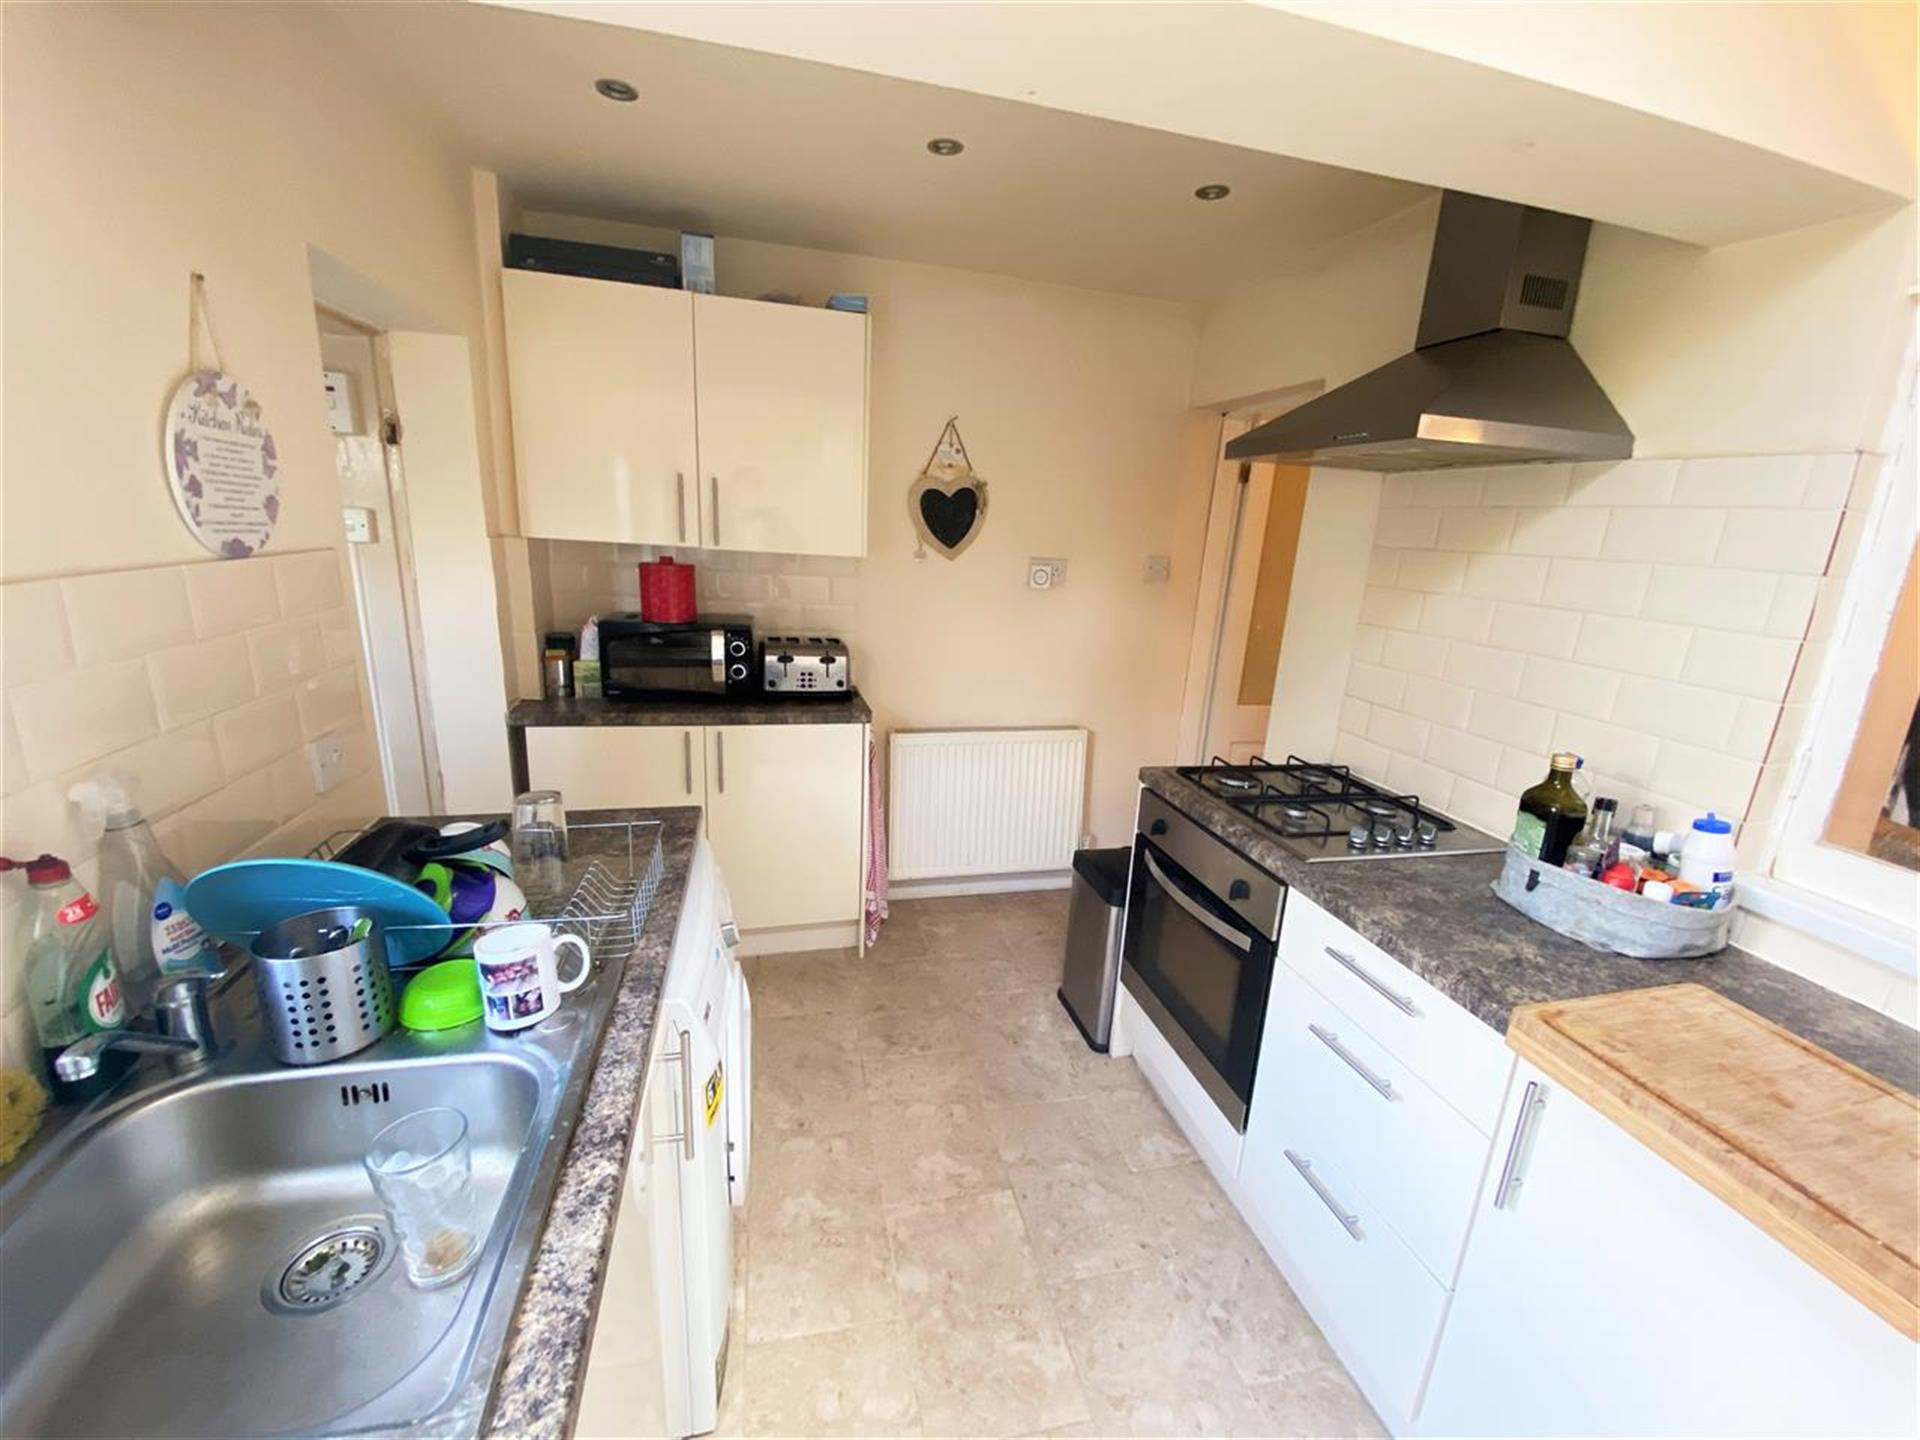 2 Bedroom Terraced House For Sale - Image 6